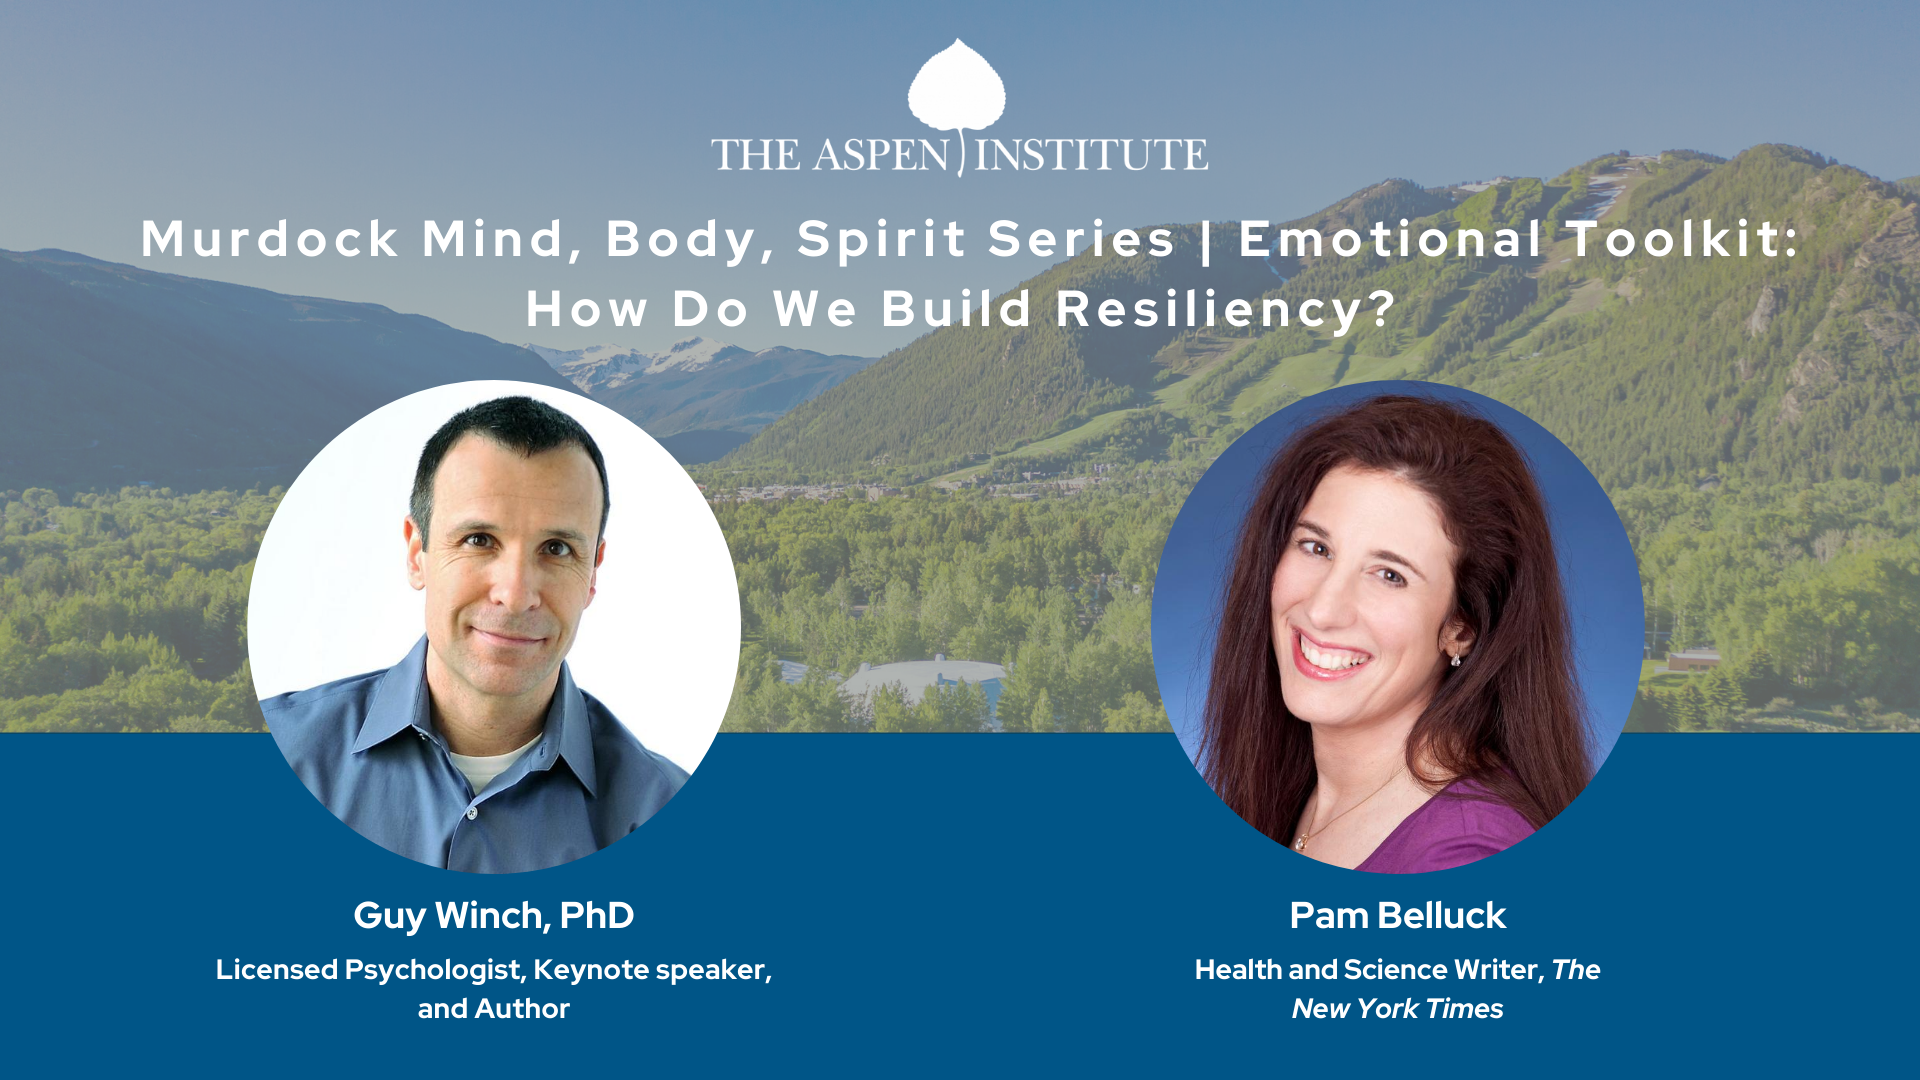 Guy Winch: Building Emotional Resilience